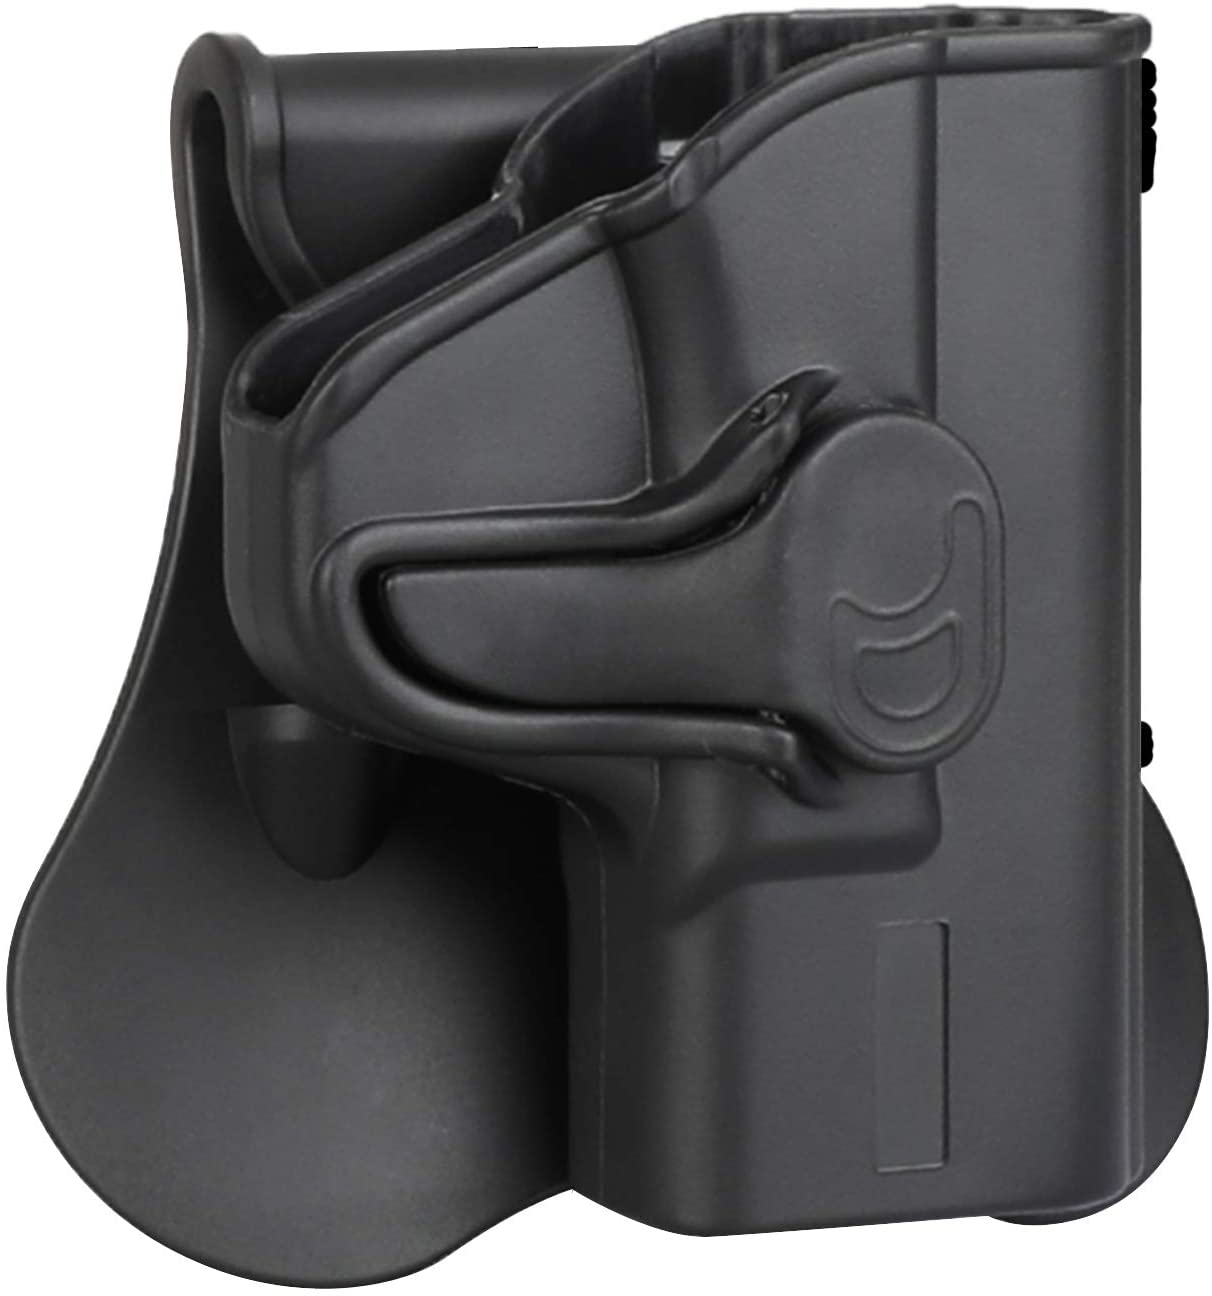 S&W M&P Shield 9mm OWB Holster Fits Smith & Wesson MP Shield 9MM/.40(3.1'' Barrel), Paddle Holster for Shield M2.0 9MM/.40(3.1'' Barrel), Belt Carry Tactical Gun Holster - Right Handed